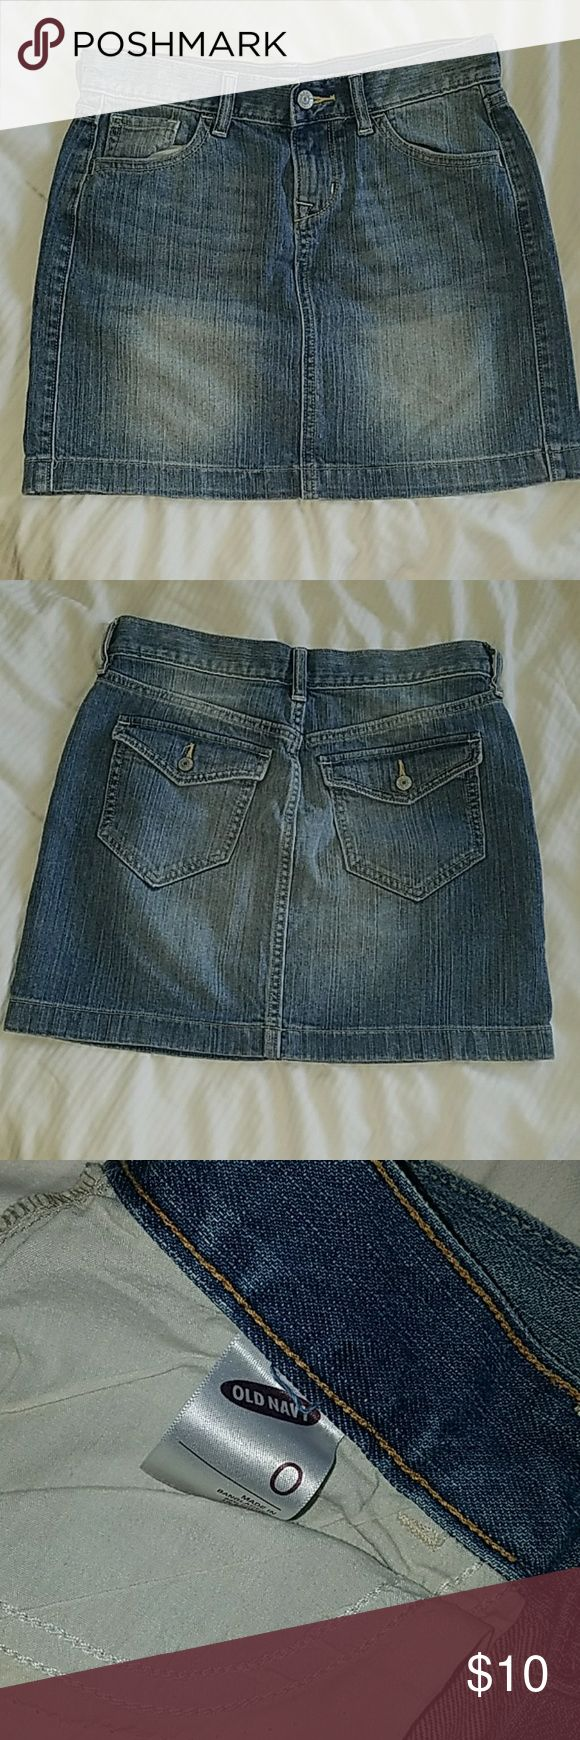 Used 1x only. old navy jean mini skirt. Size 0. Used 1x. Jean mini skirt. Old Navy Skirts Mini